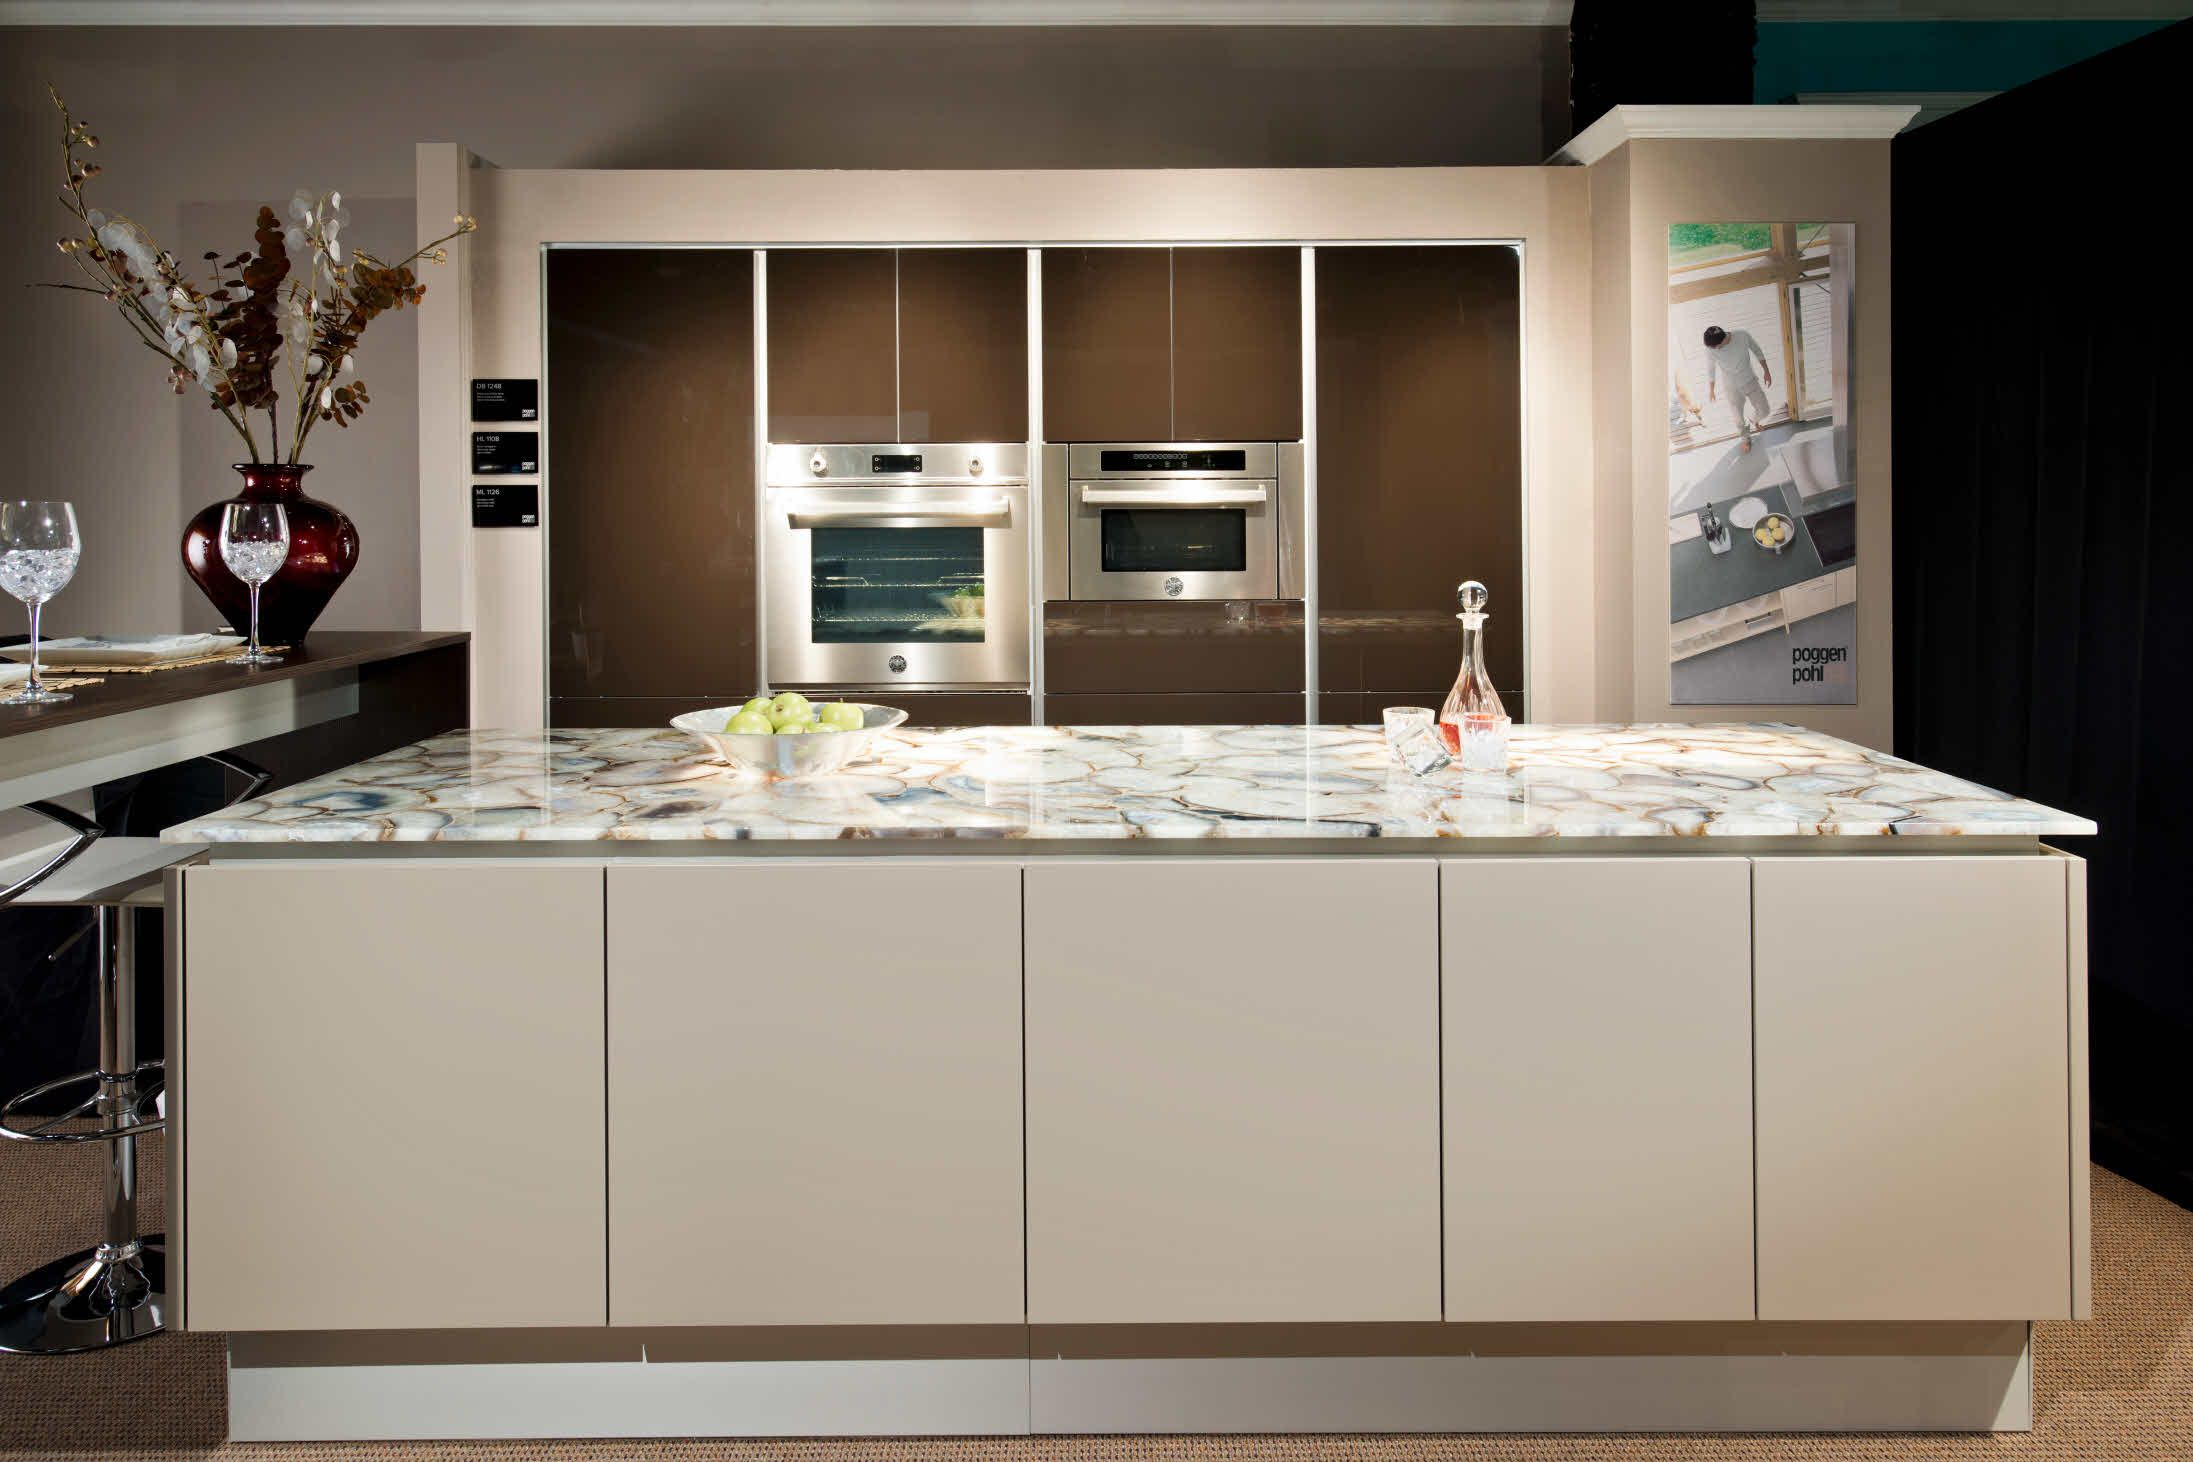 Florida West 2nd Place Dream Room Contest Kitchen Cabinet Styles Kitchen Gallery Kitchen Solutions